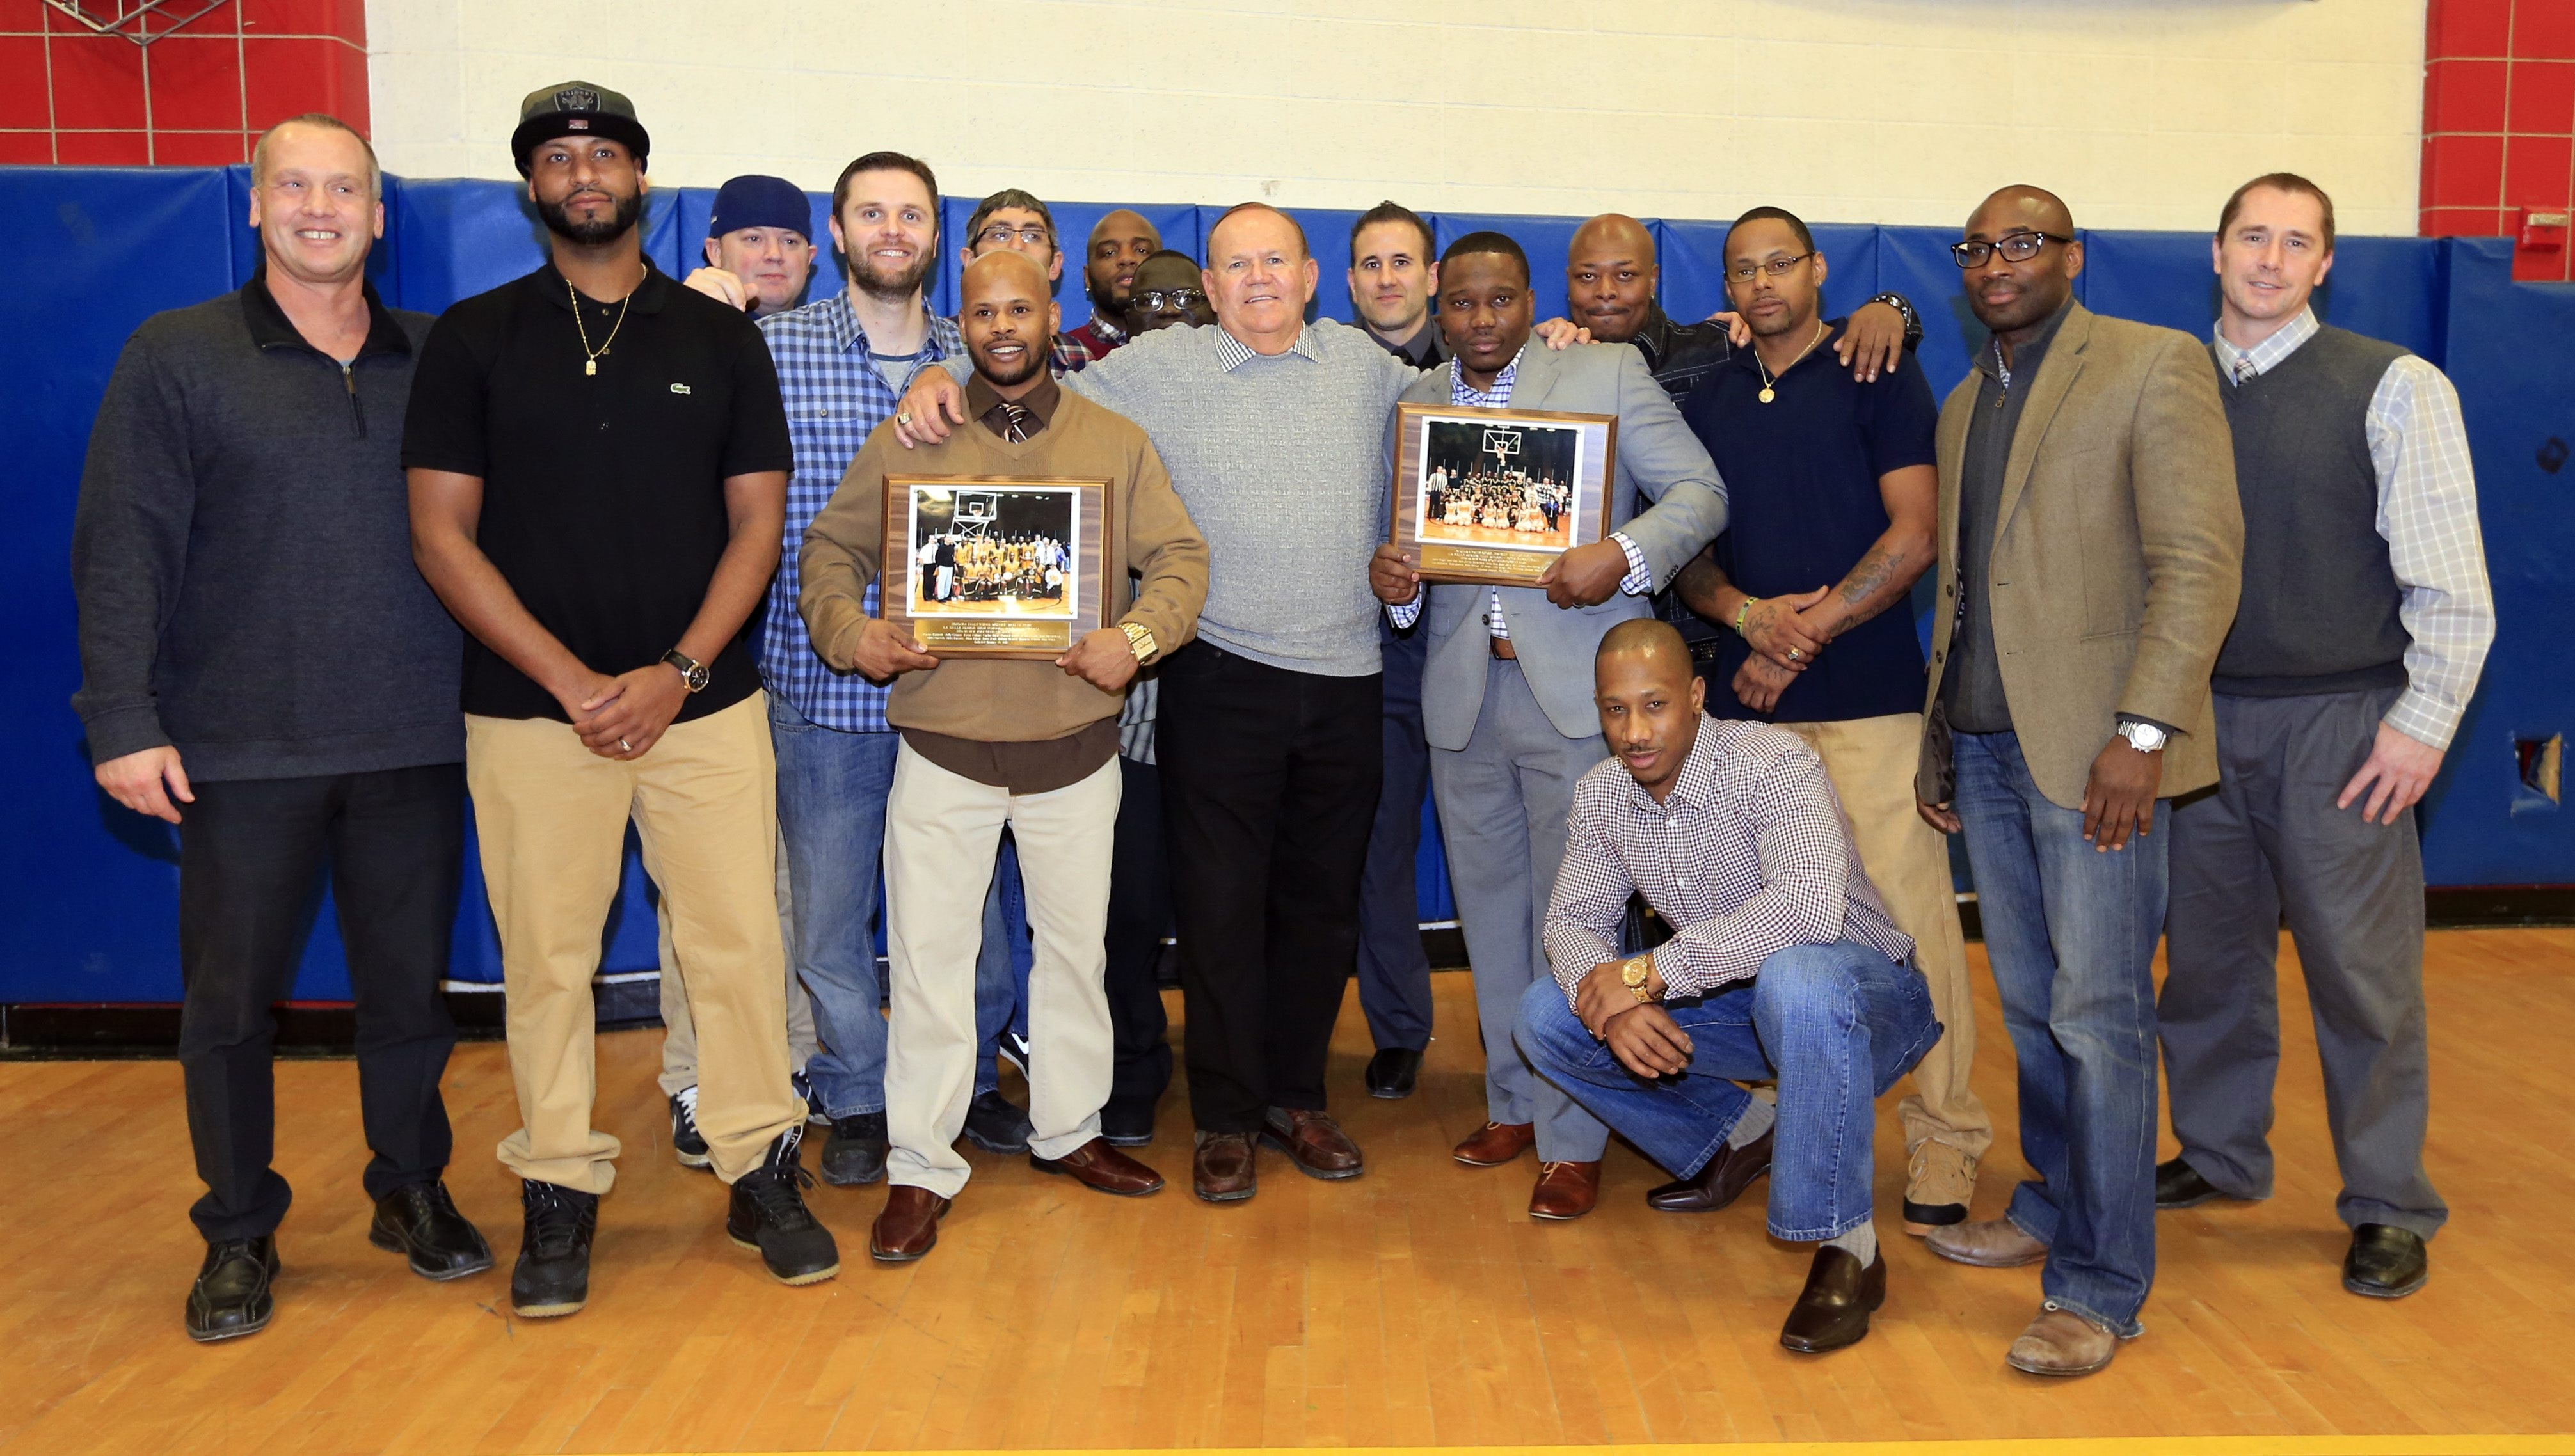 Coaches and players from the 1994-95 and 1995-96 state championship teams are honored at Niagara Falls high school on Friday, Jan. 29, 2016.  ()